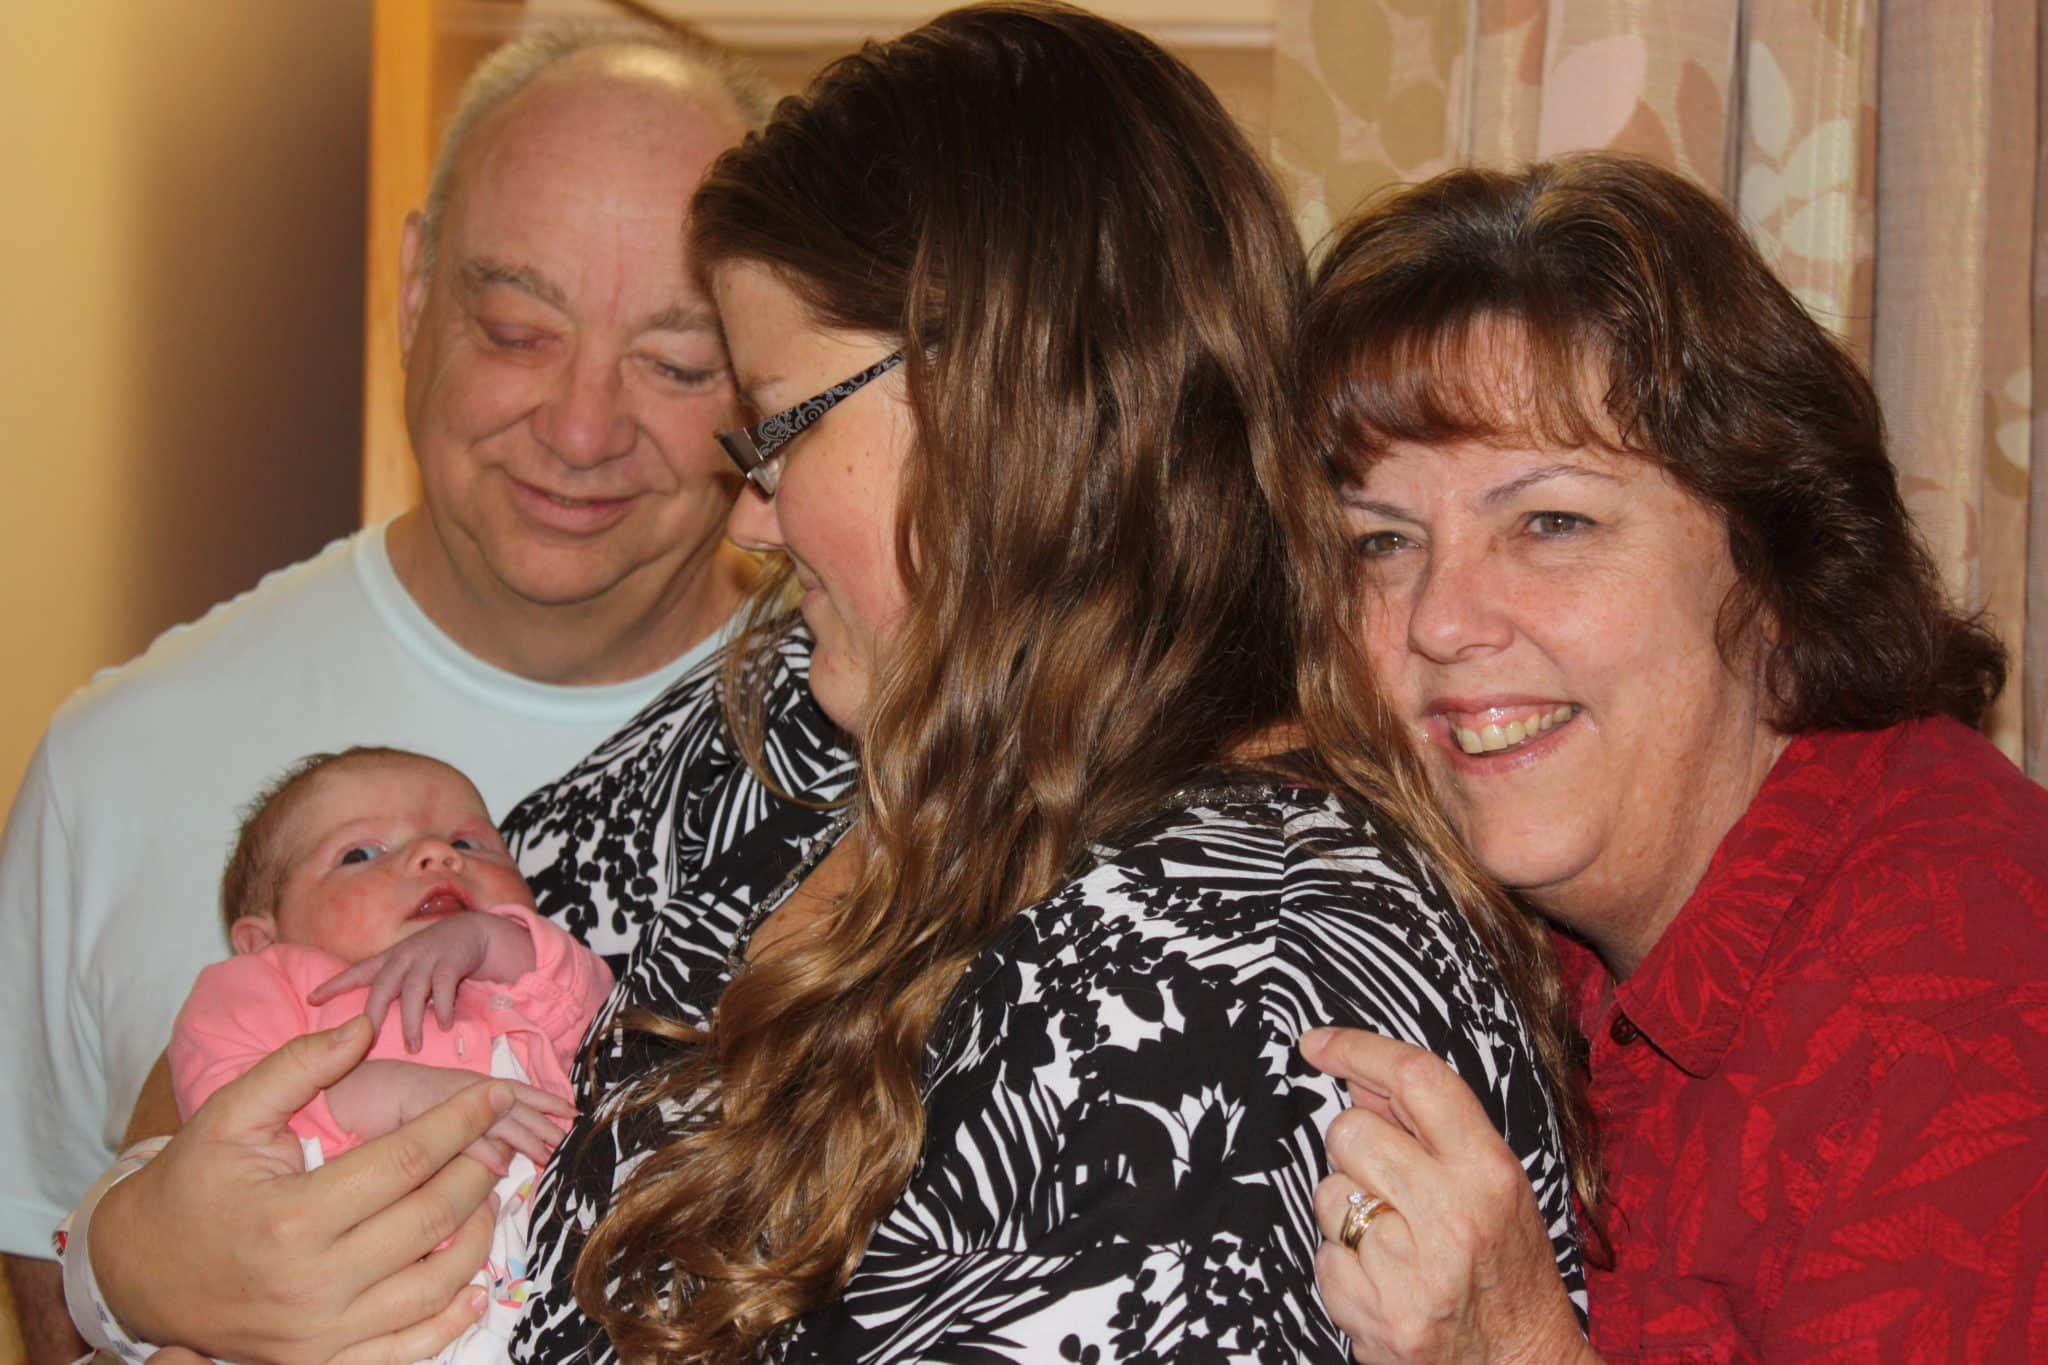 Me (the birth mother) with my daughter and my parents